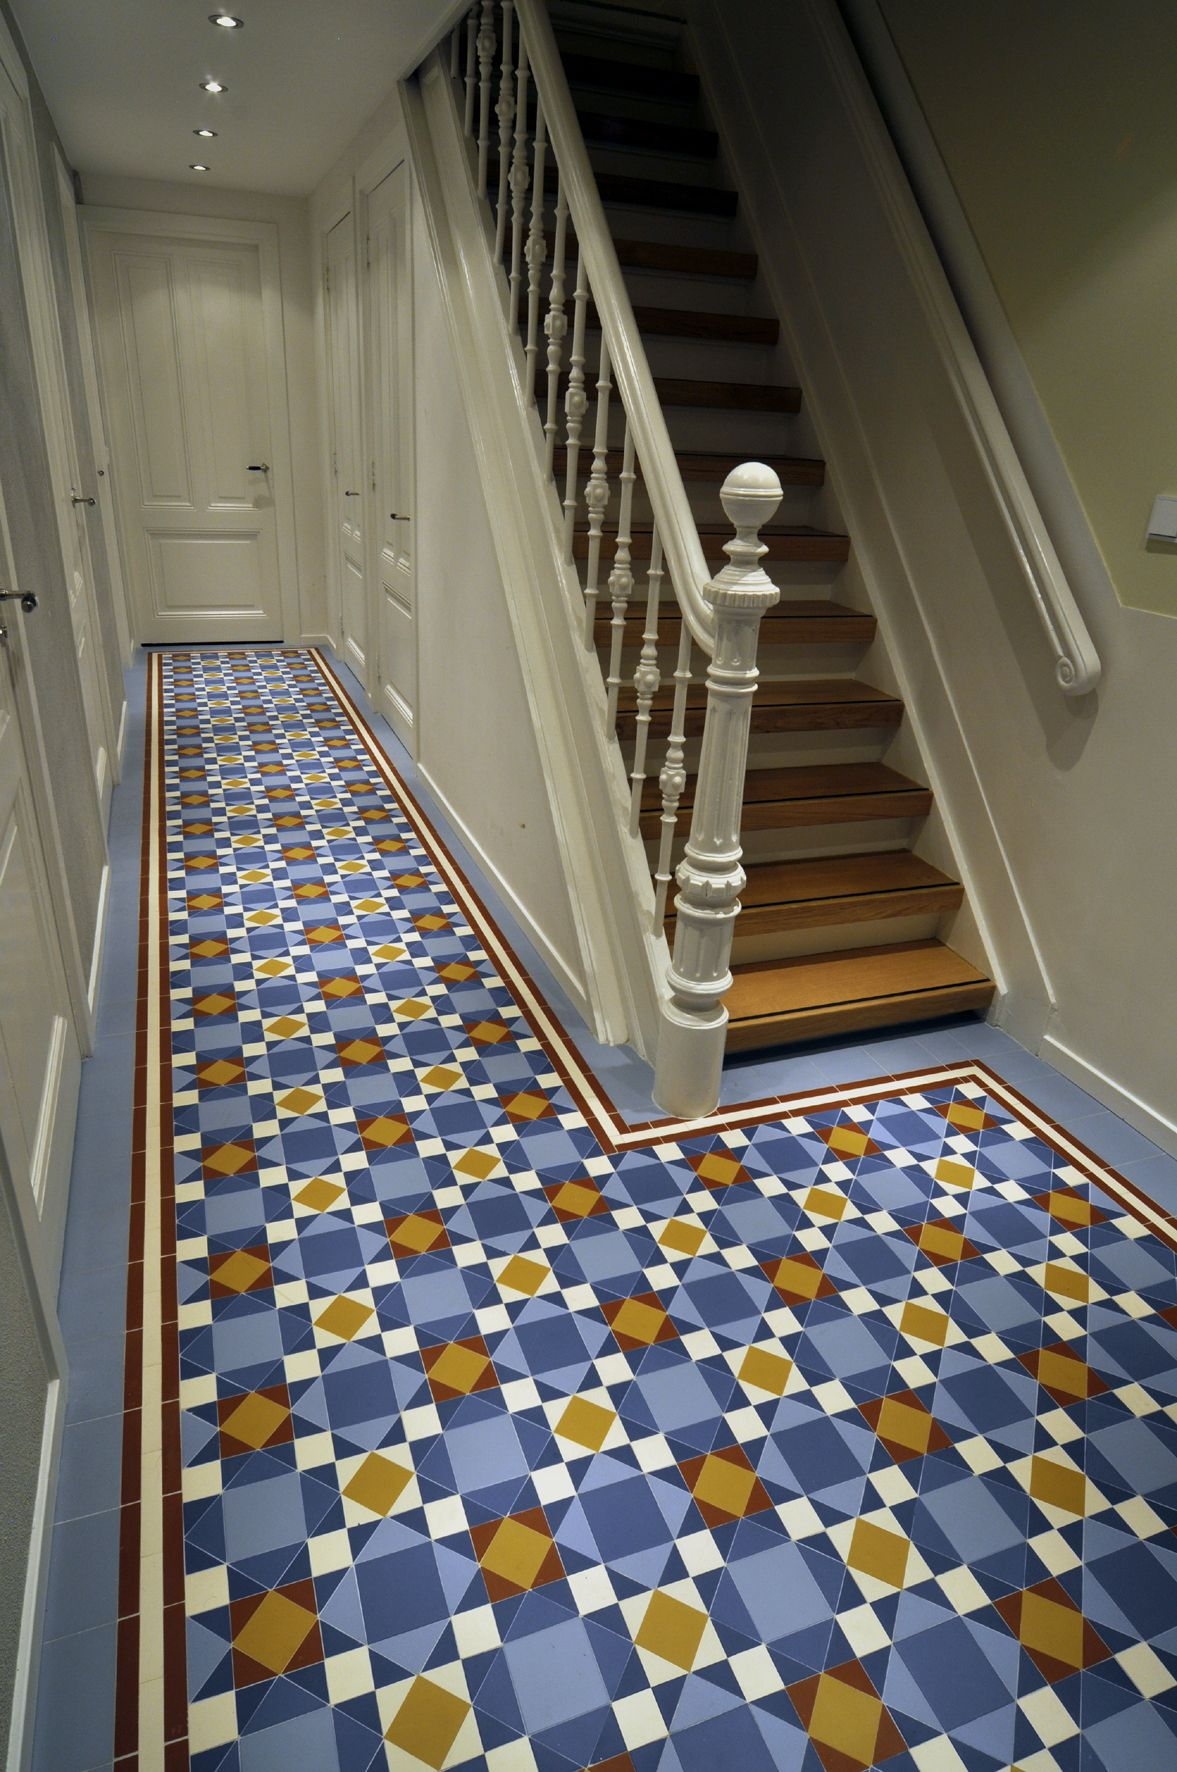 Flooring Ideas For Stairs Winckelmans Brighton Victorian Style Tiles In Amsterdam